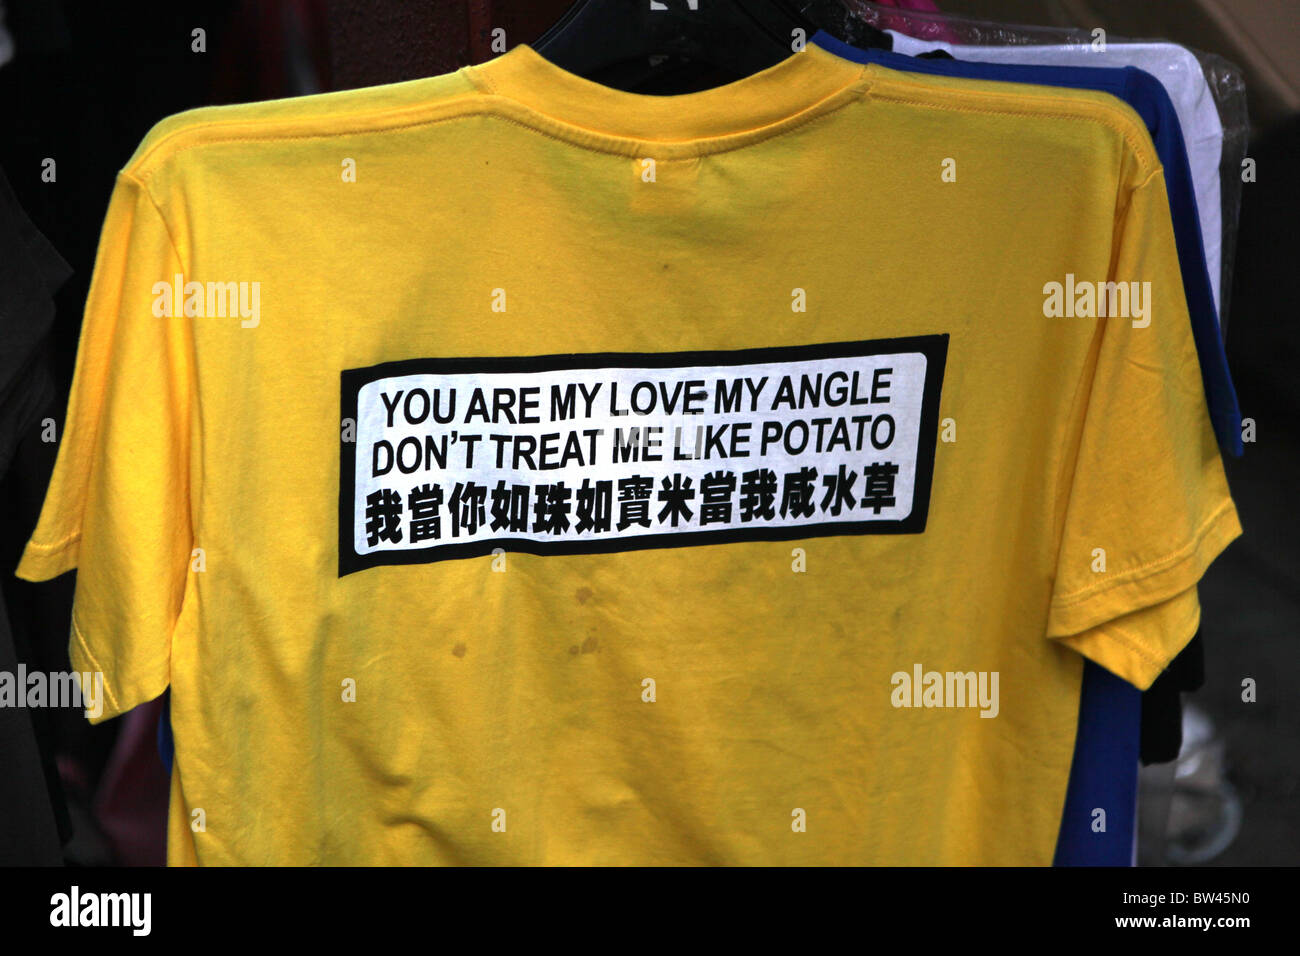 An amusing T-shirt with bad translation on display at the market in Stanley, Hong Kong, China. - Stock Image